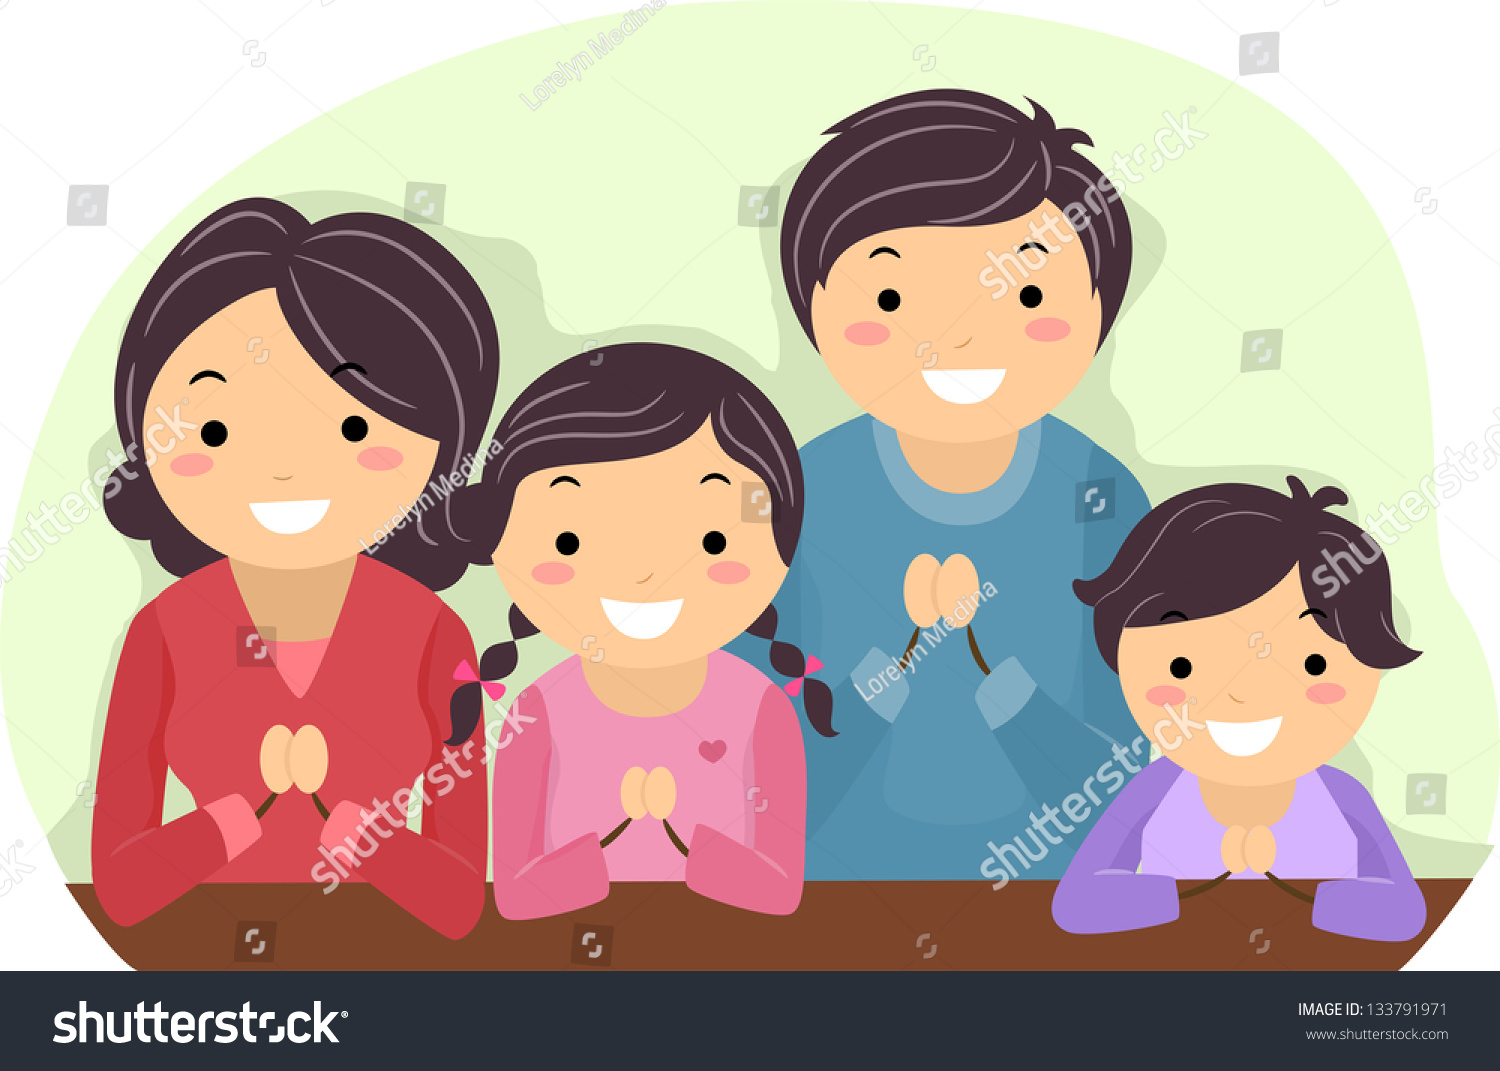 Illustration Family Praying Together Stock Vector ...